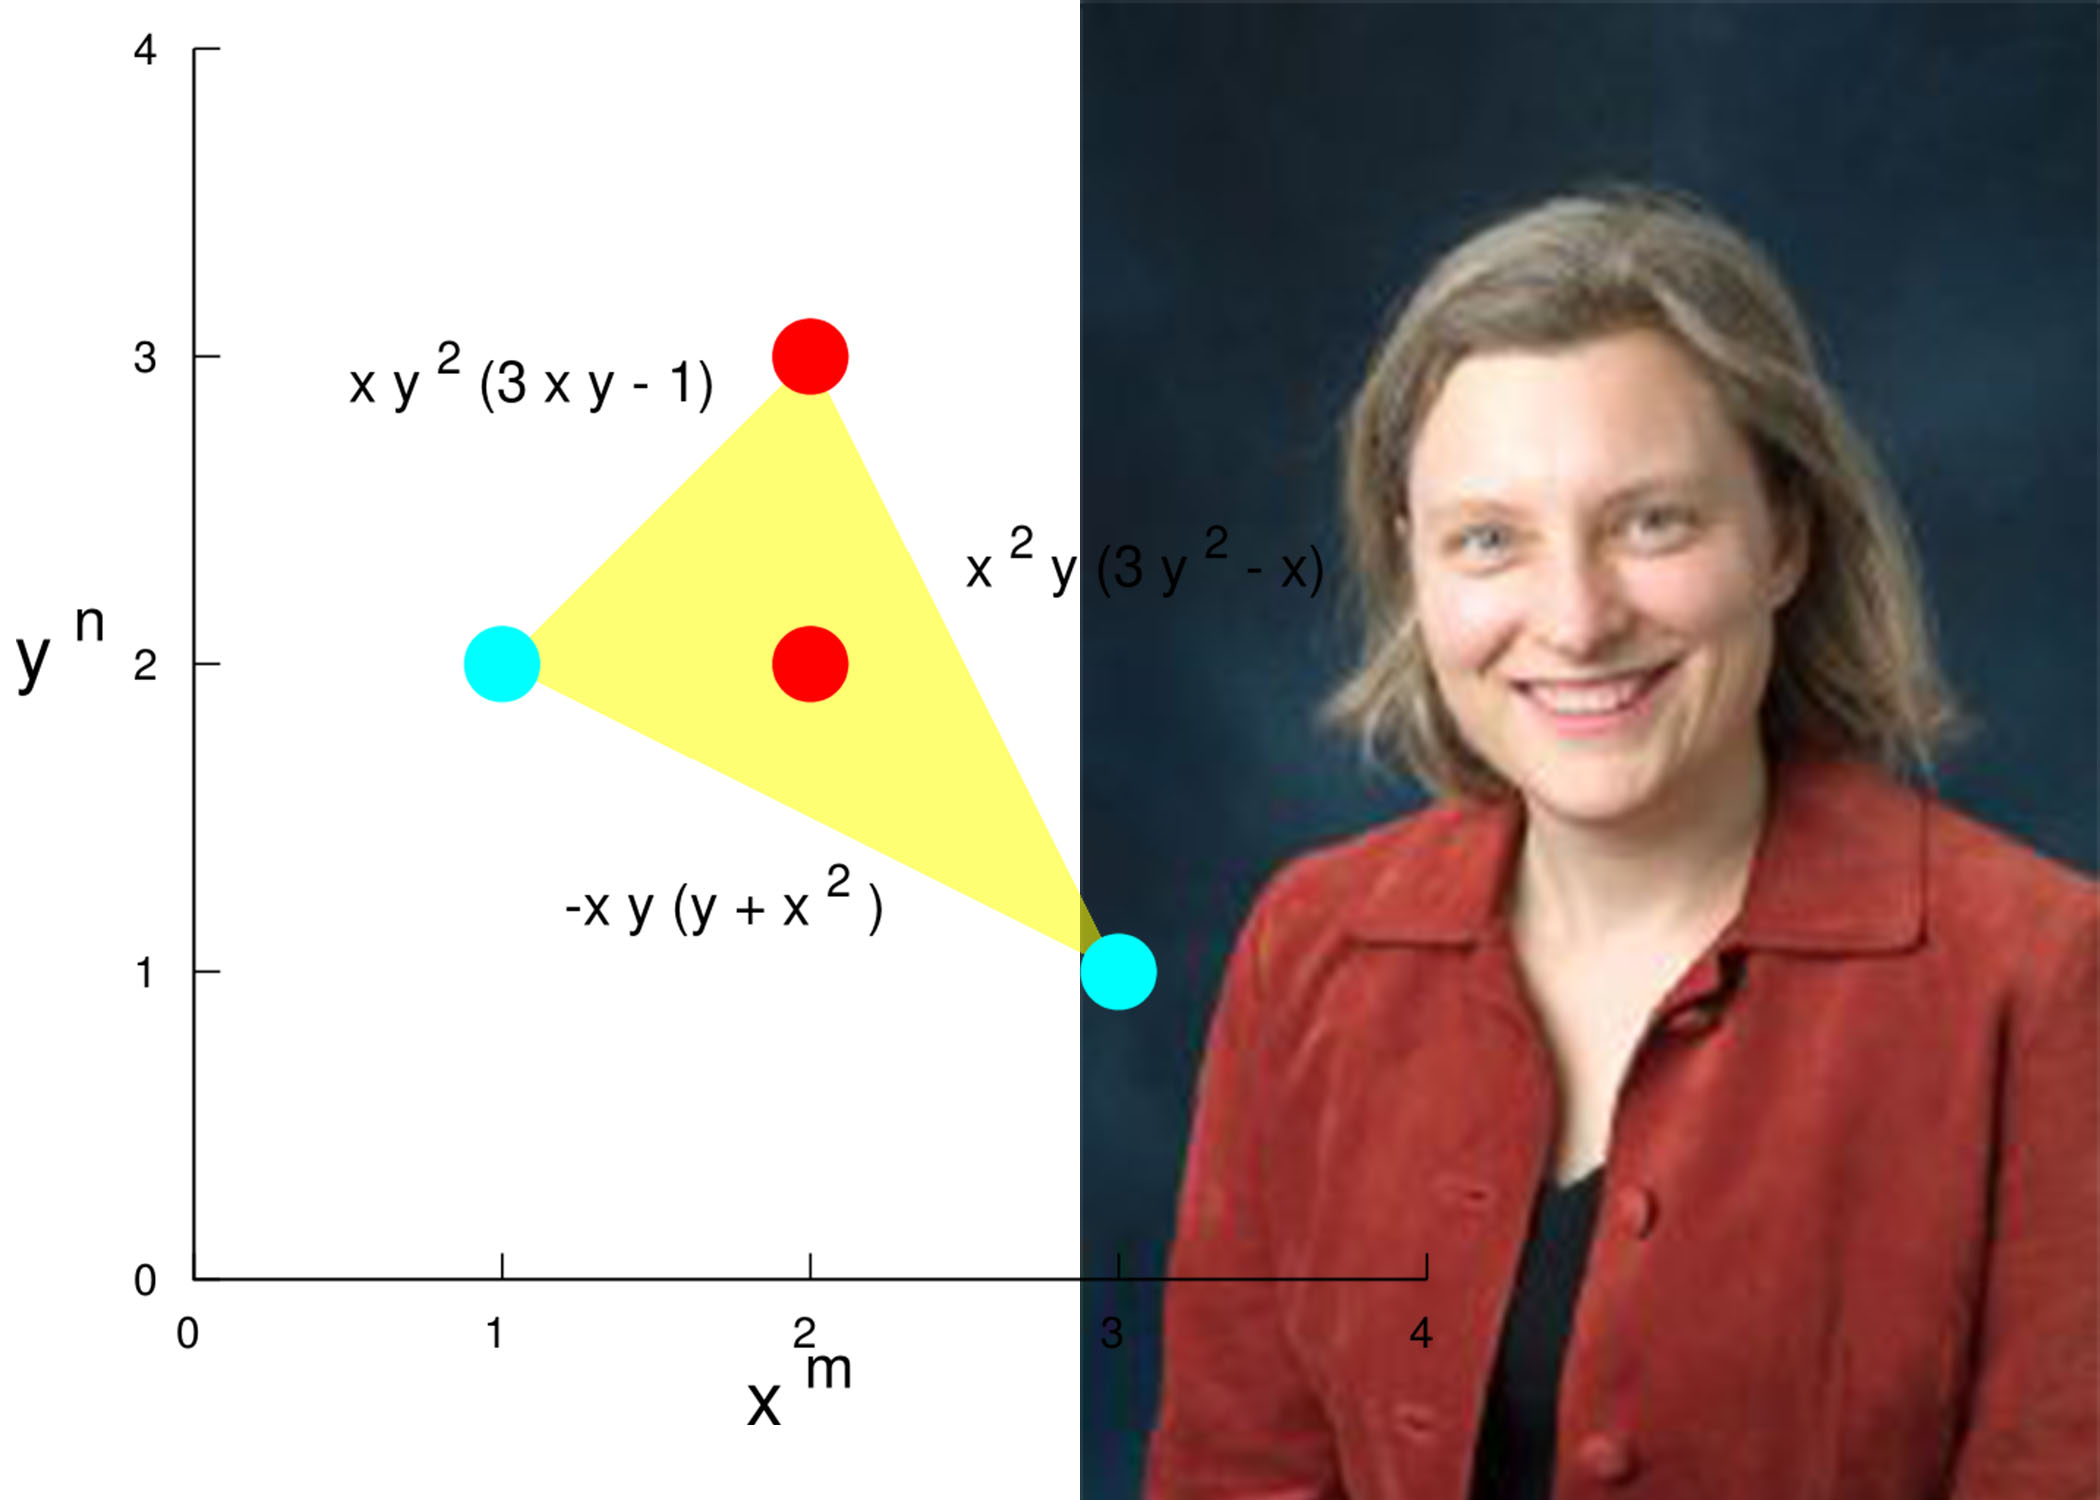 Image of Professor Rachel Pries and graph elements related to her research